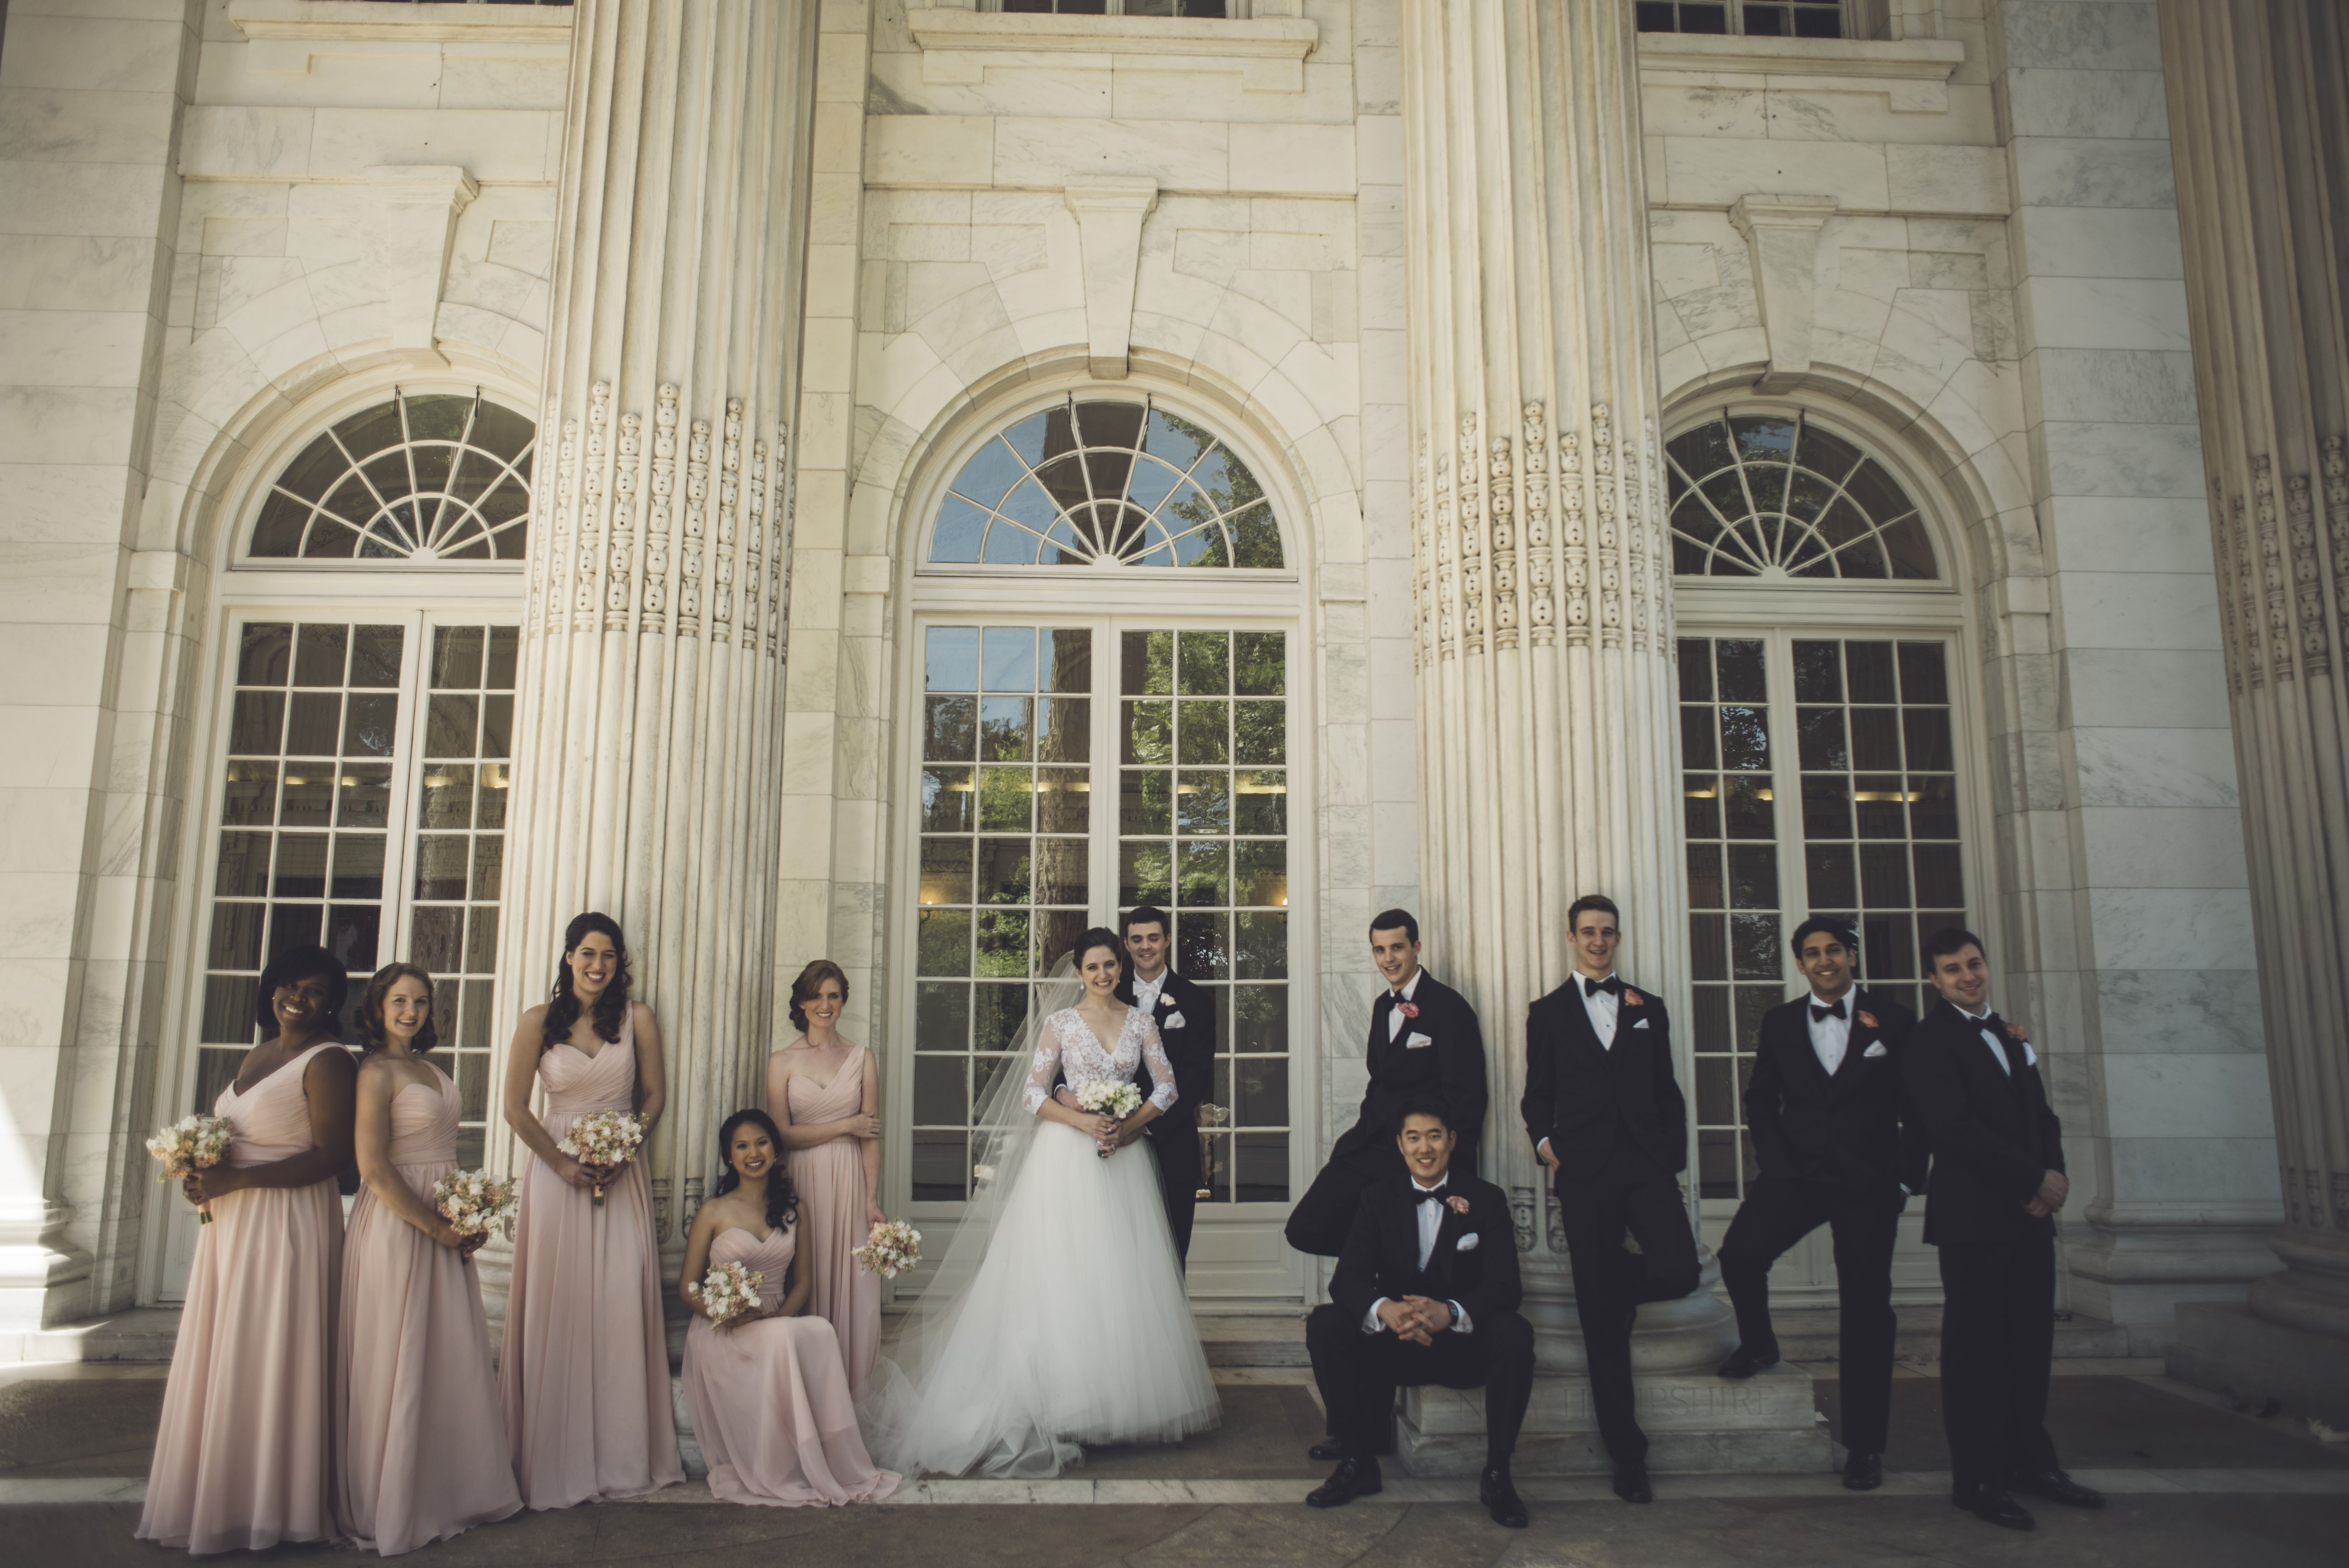 Wedding dress from carineus bridal designer of the top half is